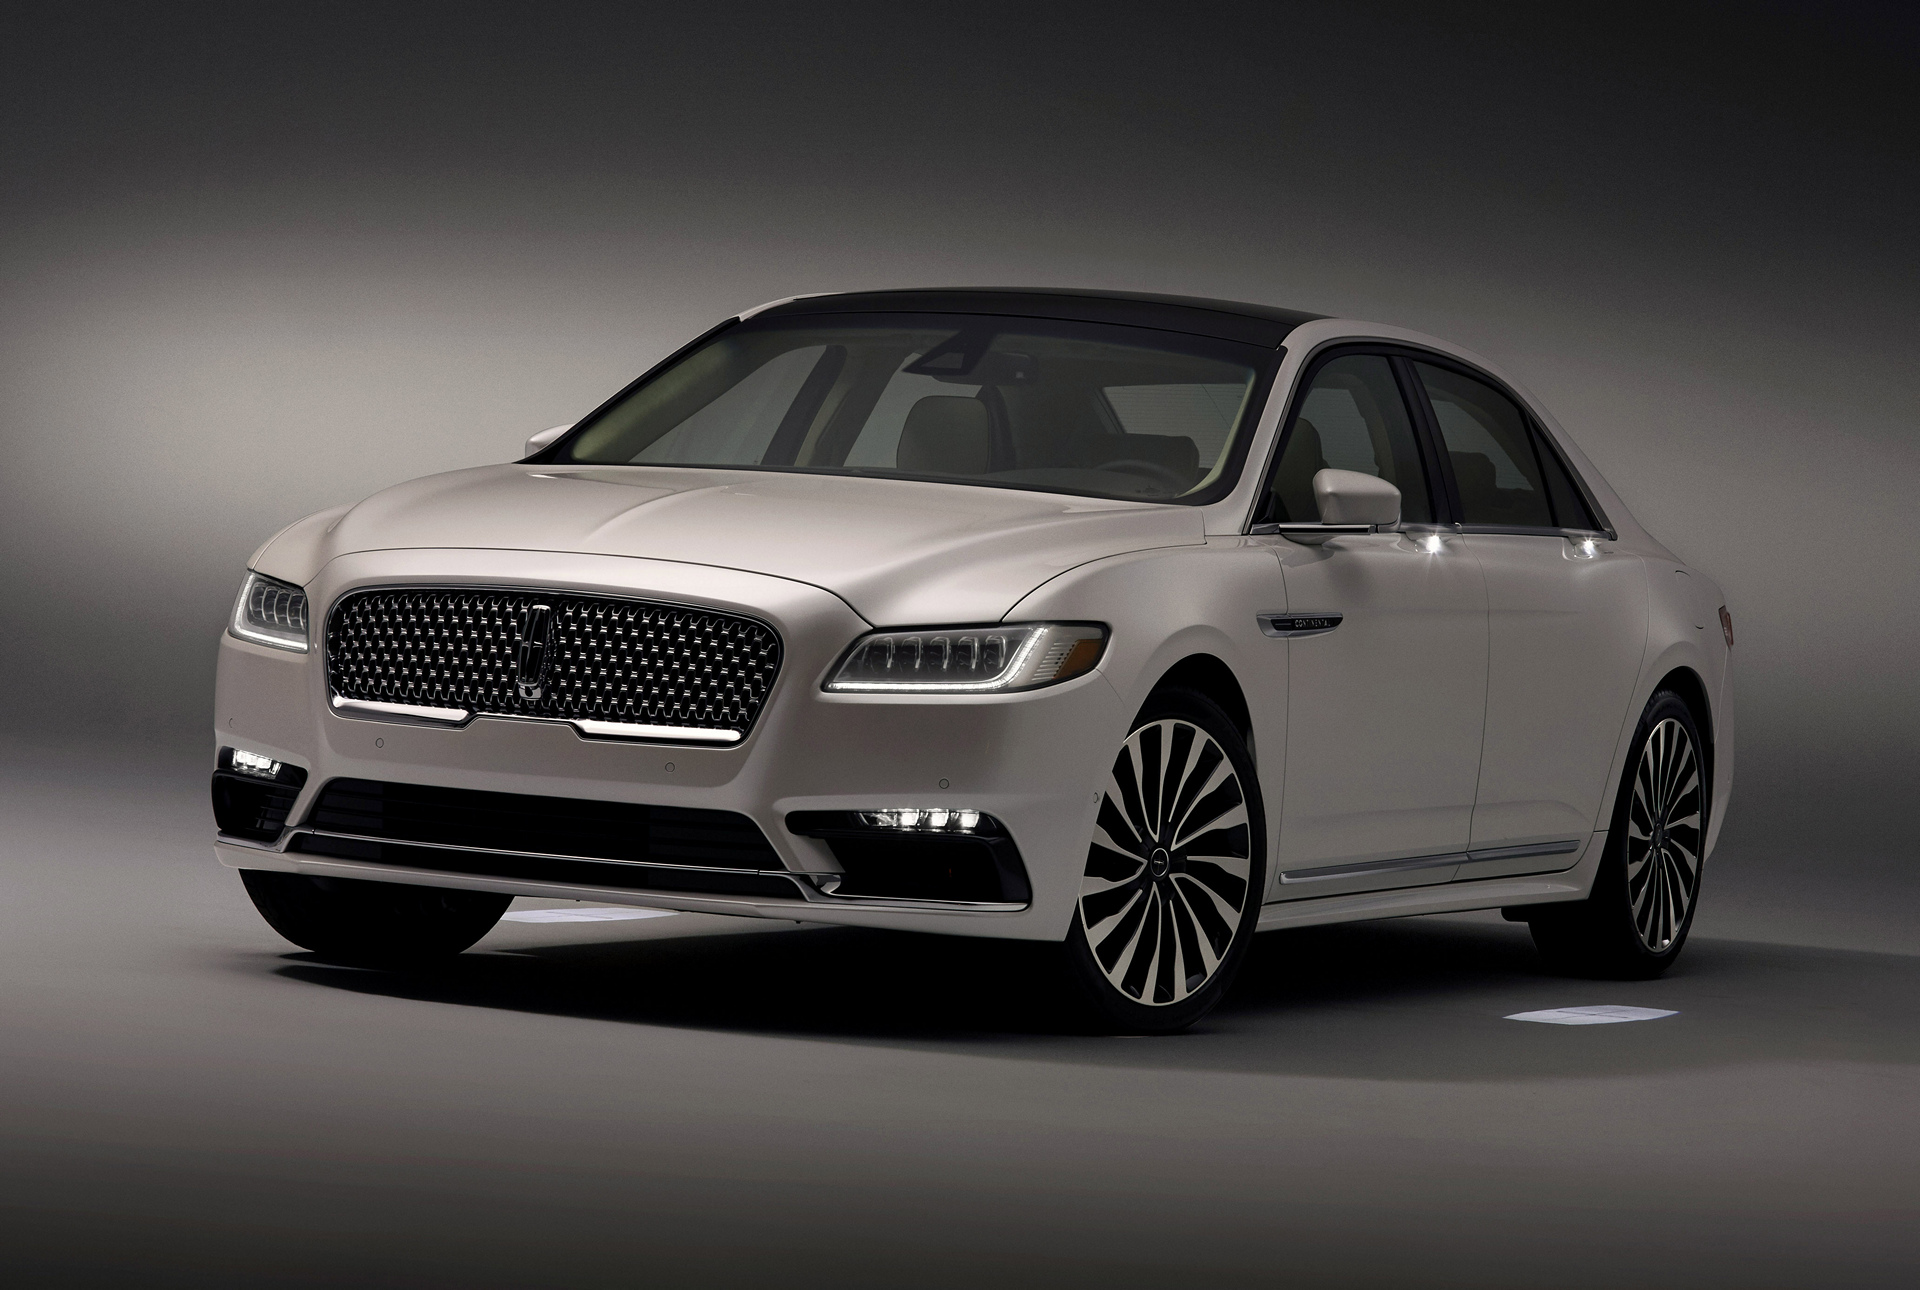 2017 Lincoln Continental Greets Customers With Warm And